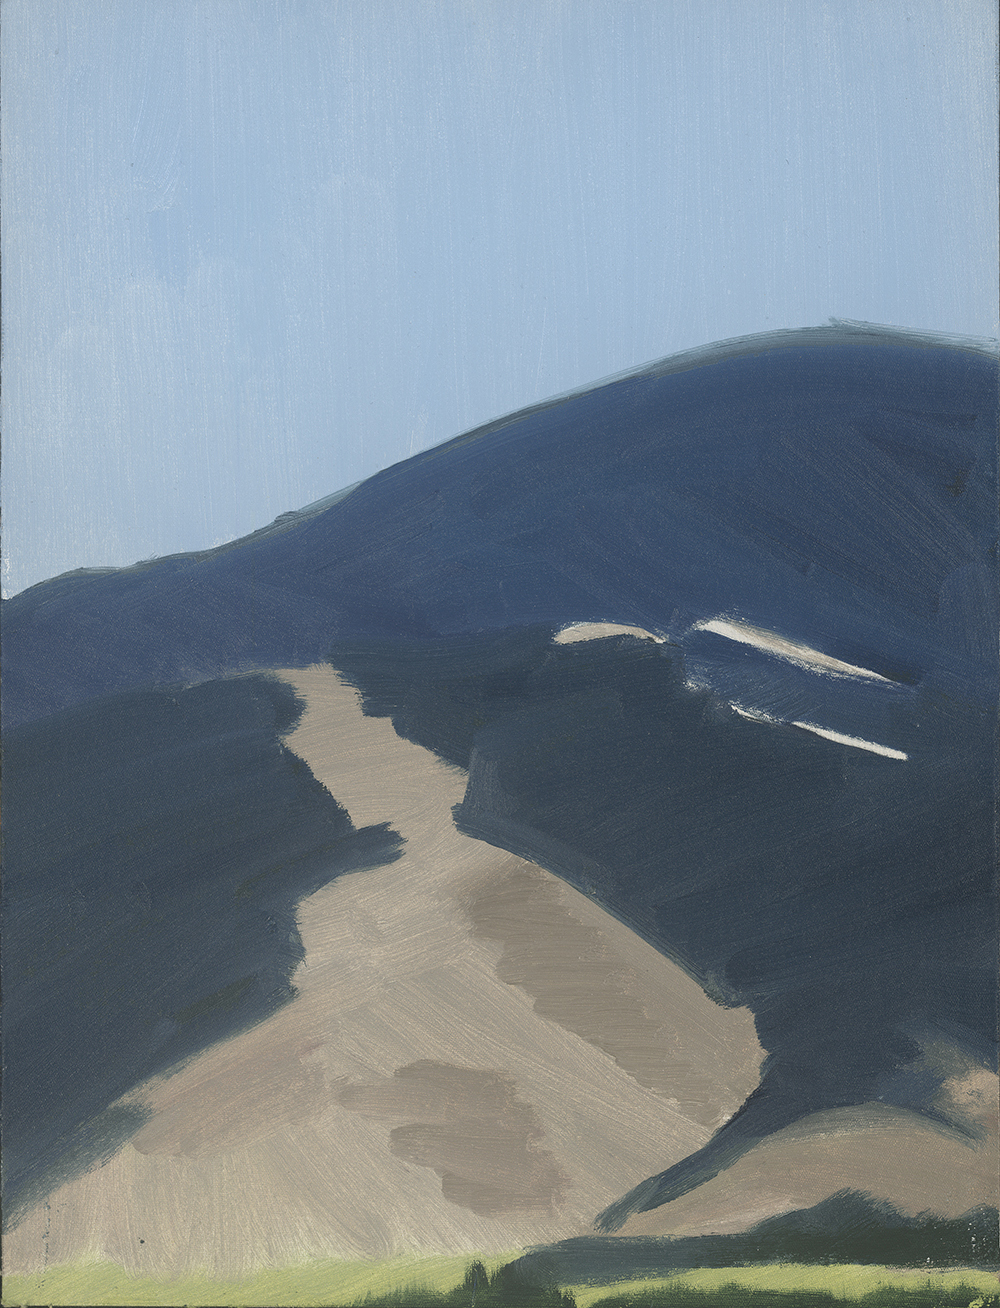 Mountain and Sky, oil on linen, 37x27.5 cm (sold)